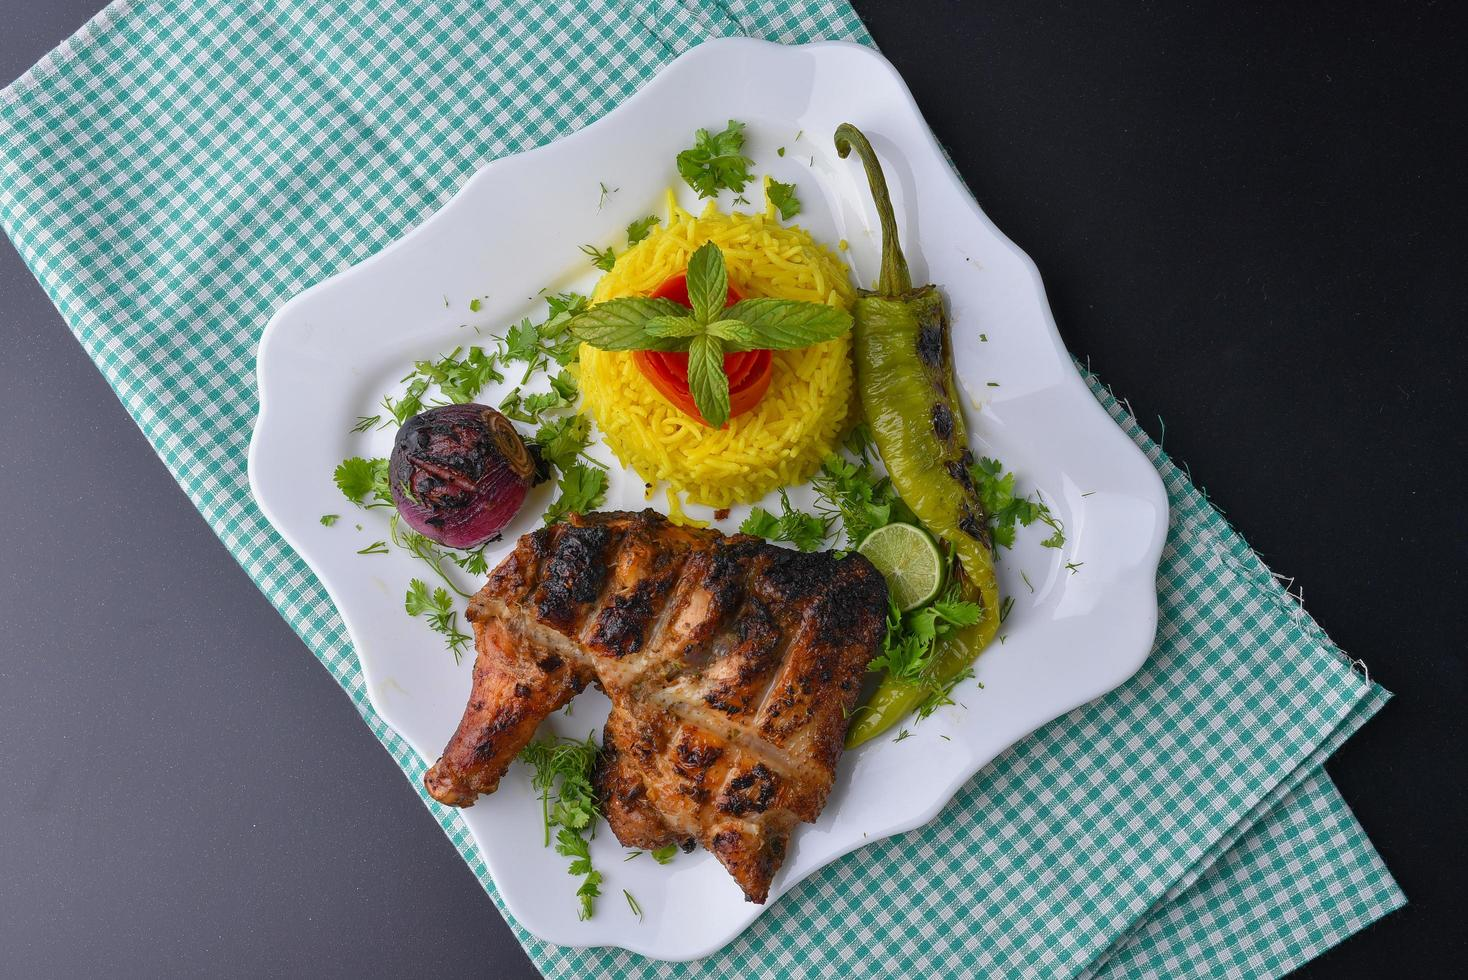 Plate of grilled chicken with sides photo